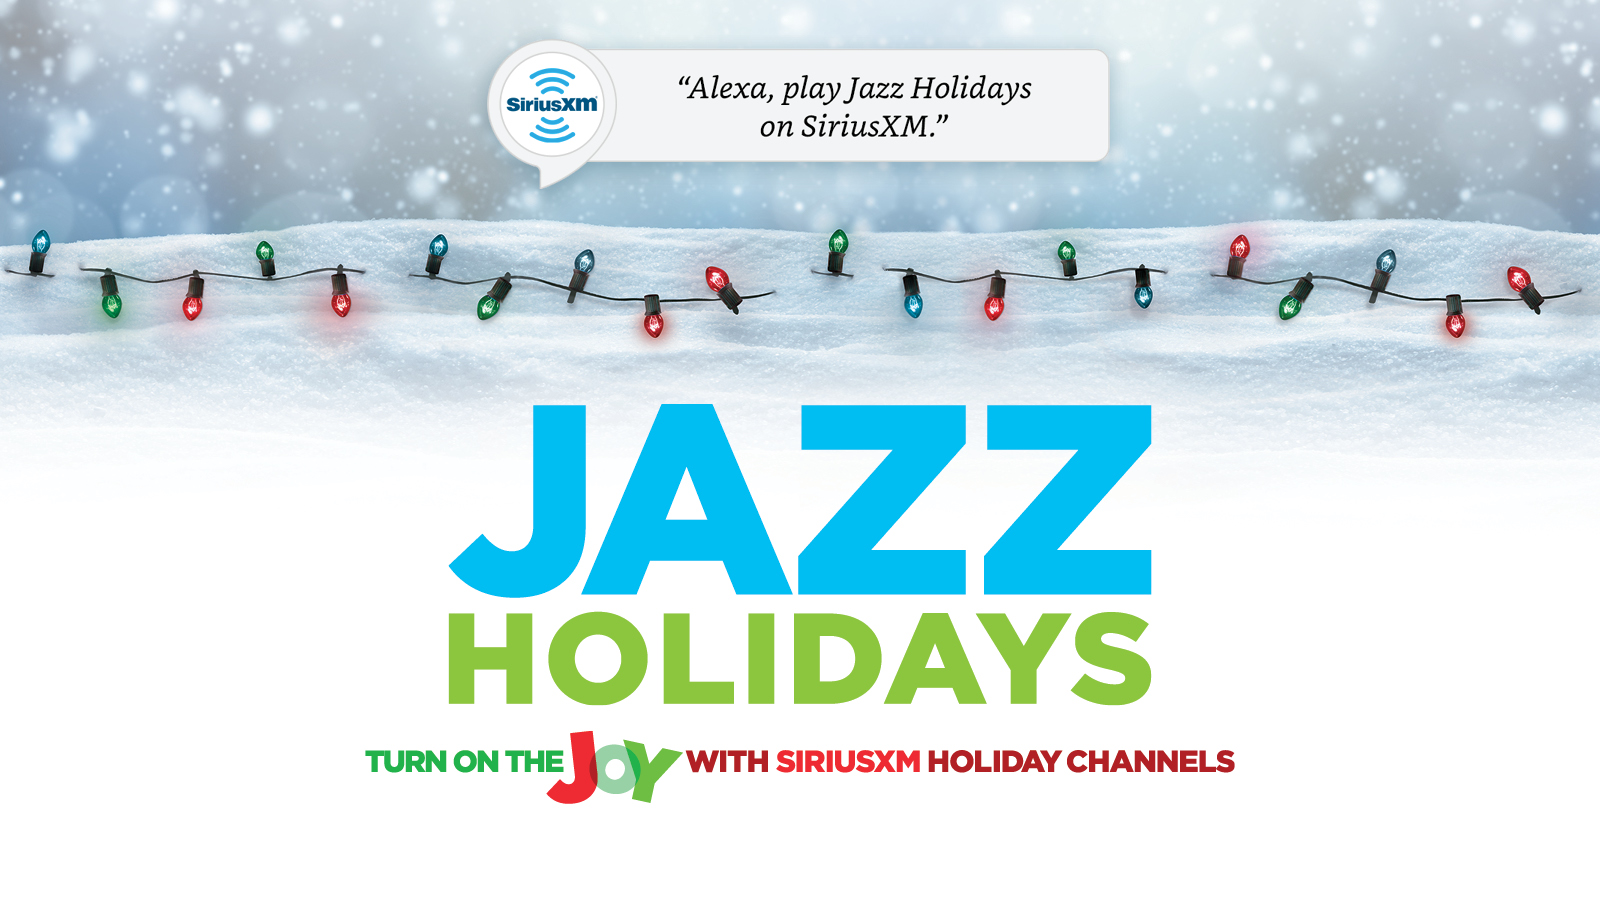 SiriusXM's new 2018 holiday channels | Hear & NowHear & Now